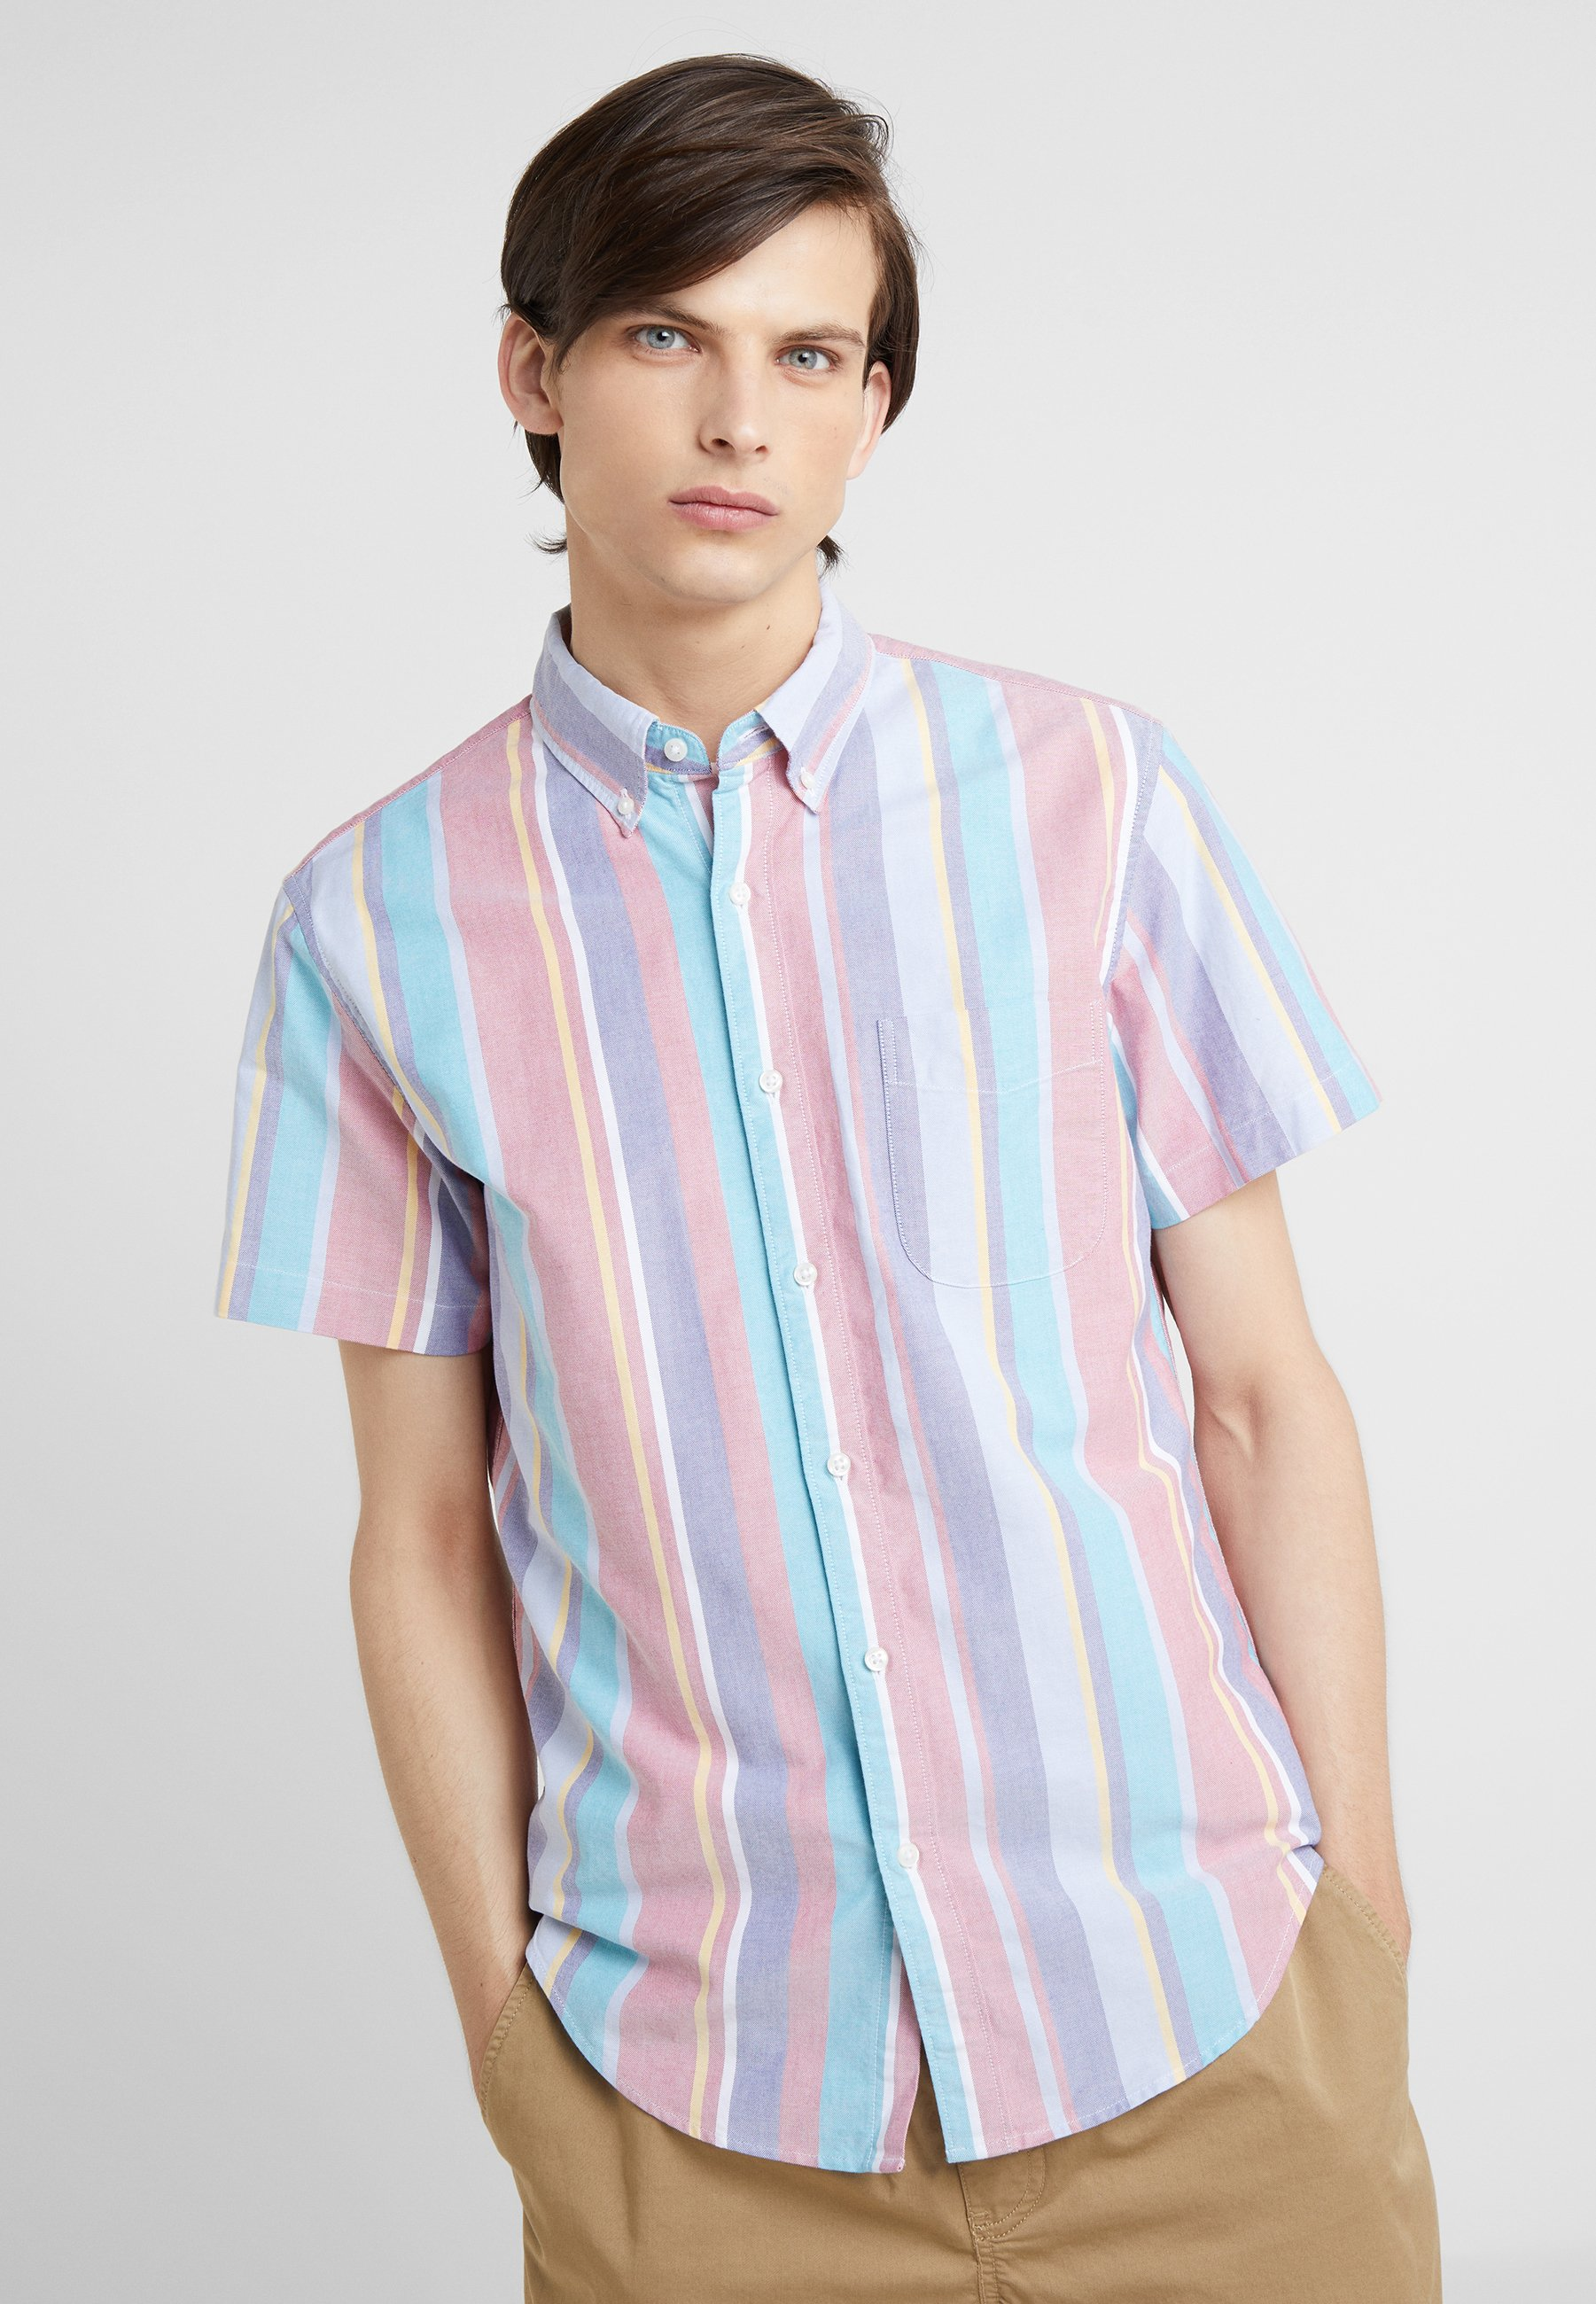 crew OxfordChemise Mechanical Barnett Multi J Classic Color DIEe29WHY